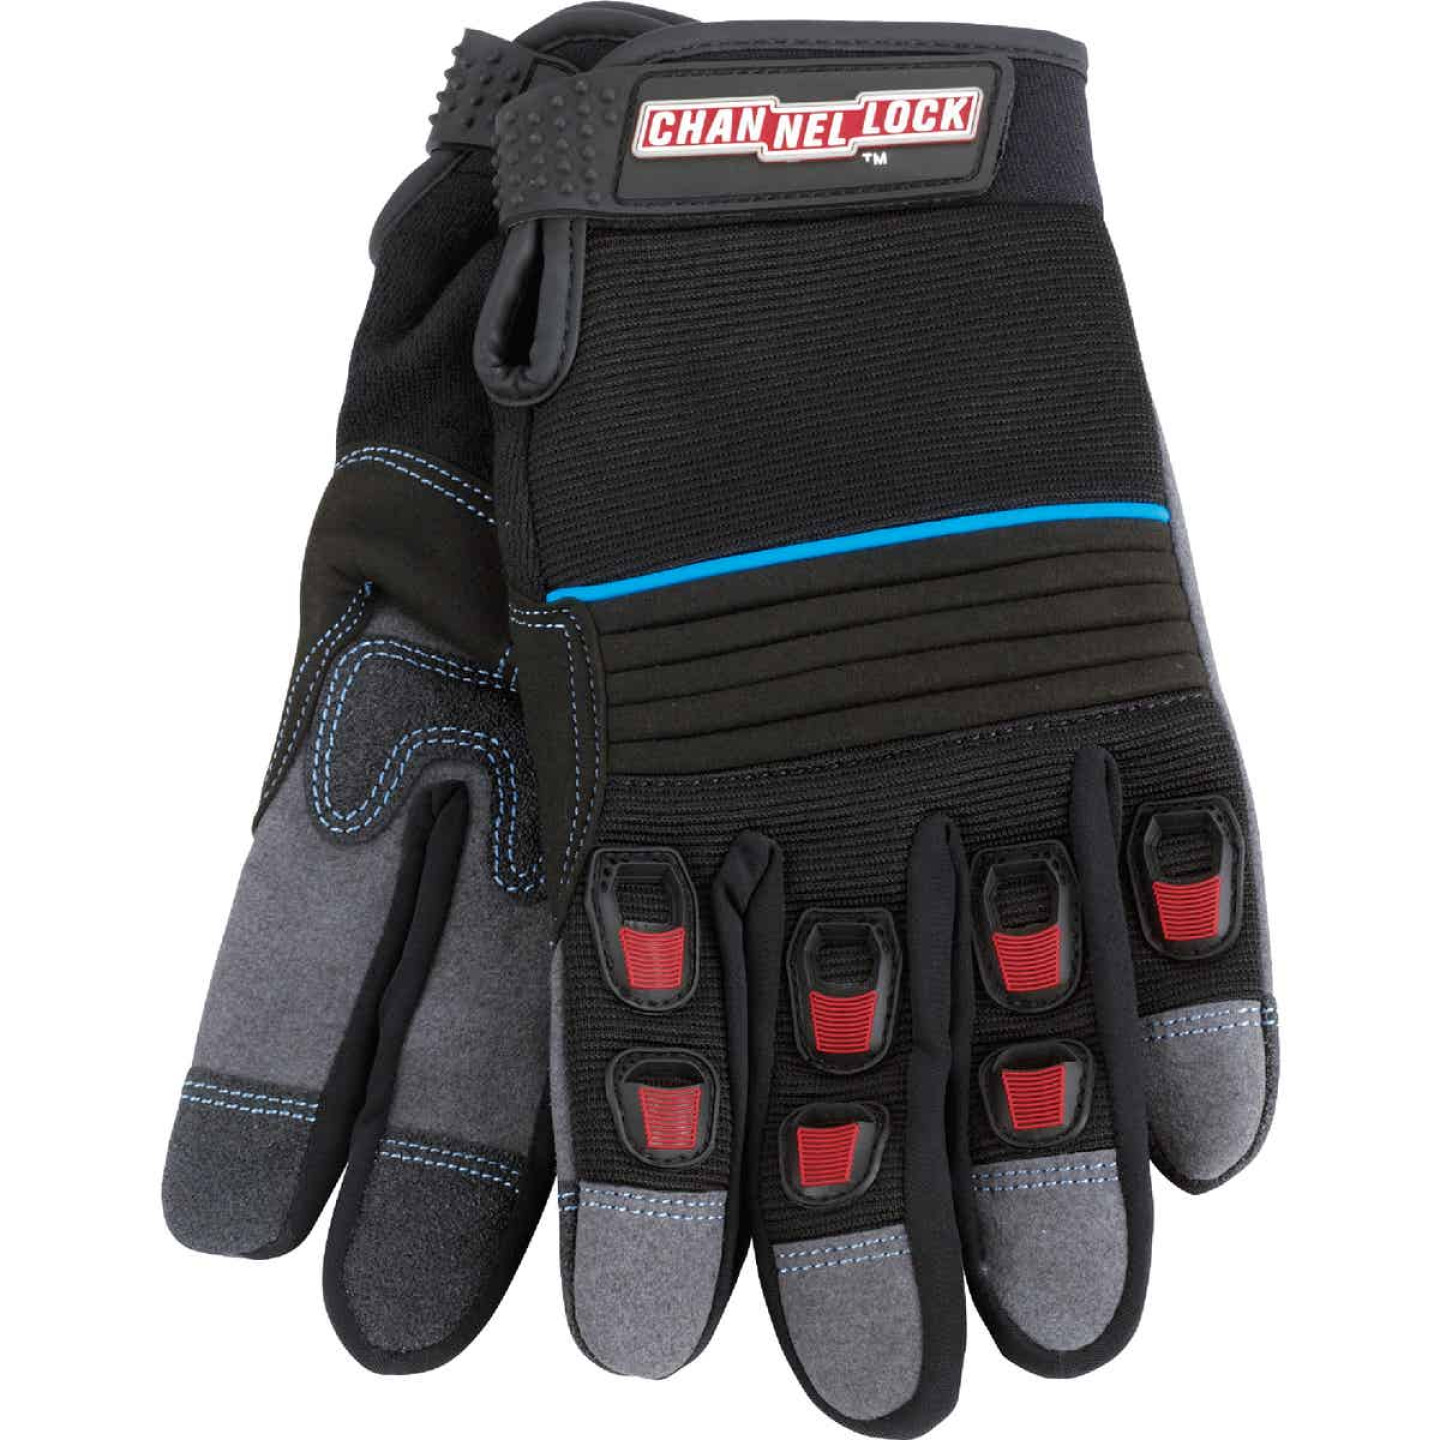 Channellock Men's Medium Synthetic Leather Heavy-Duty High Performance Glove Image 1